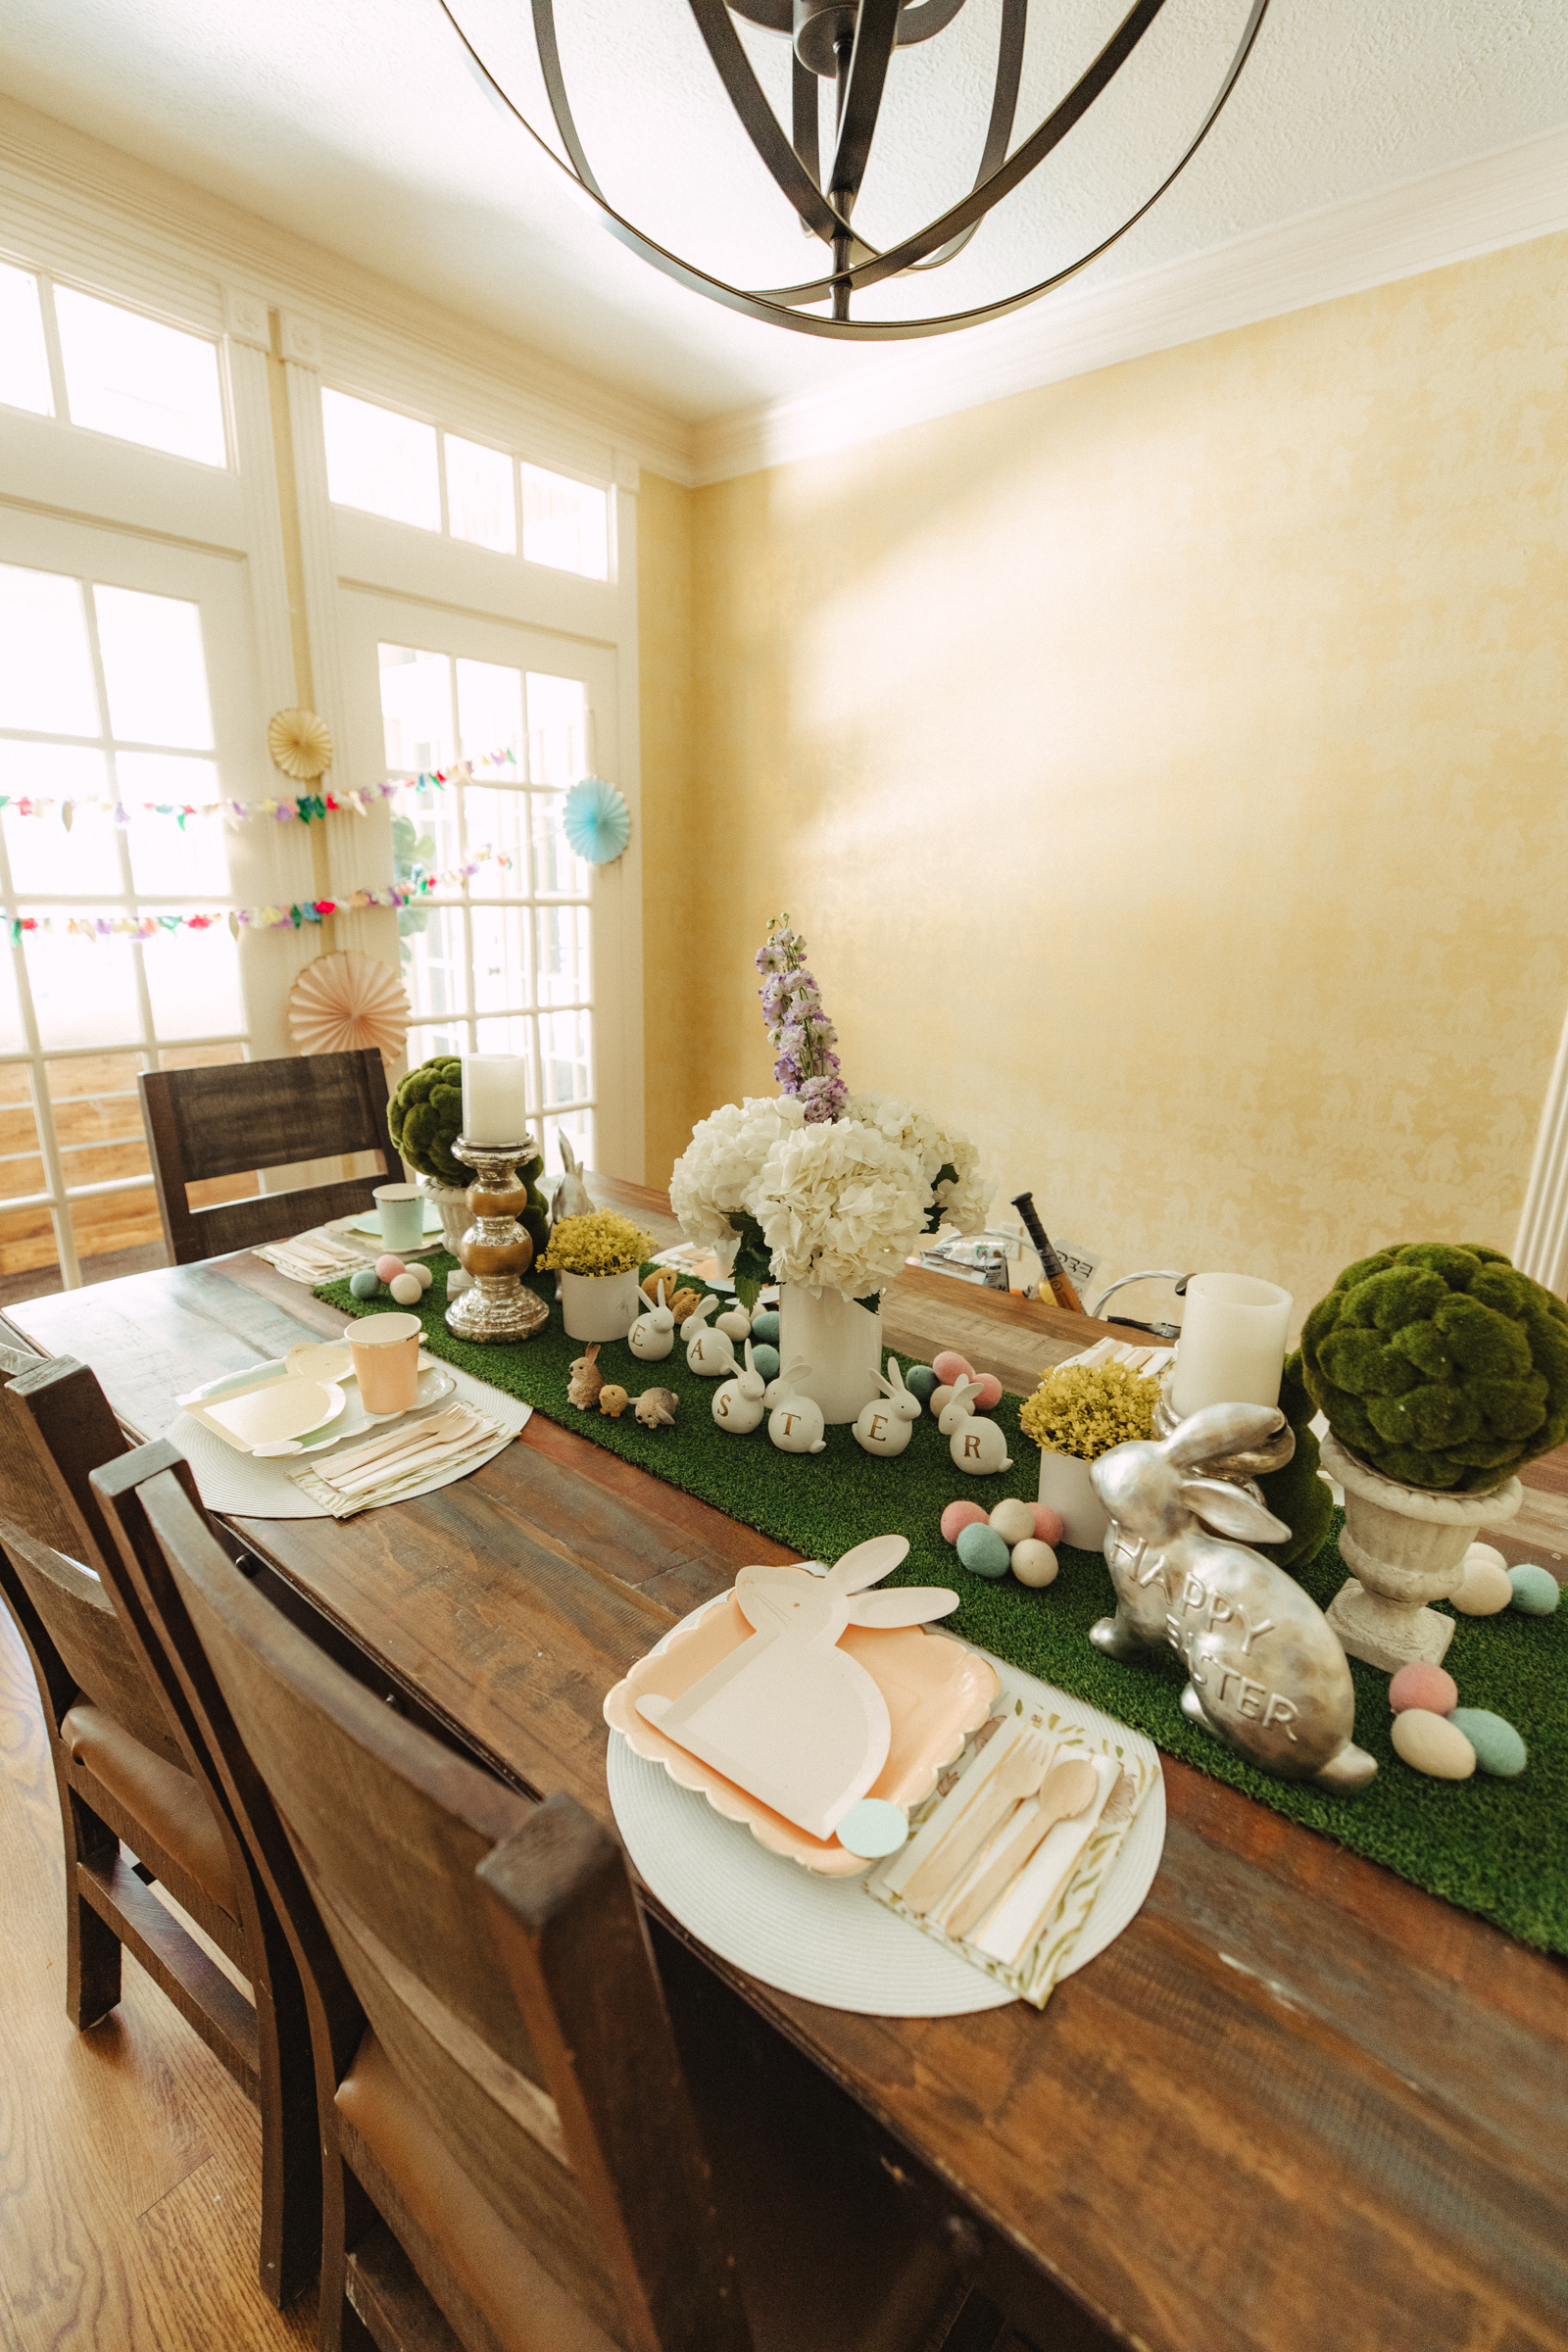 Easy and kid friendly table settings for Easter